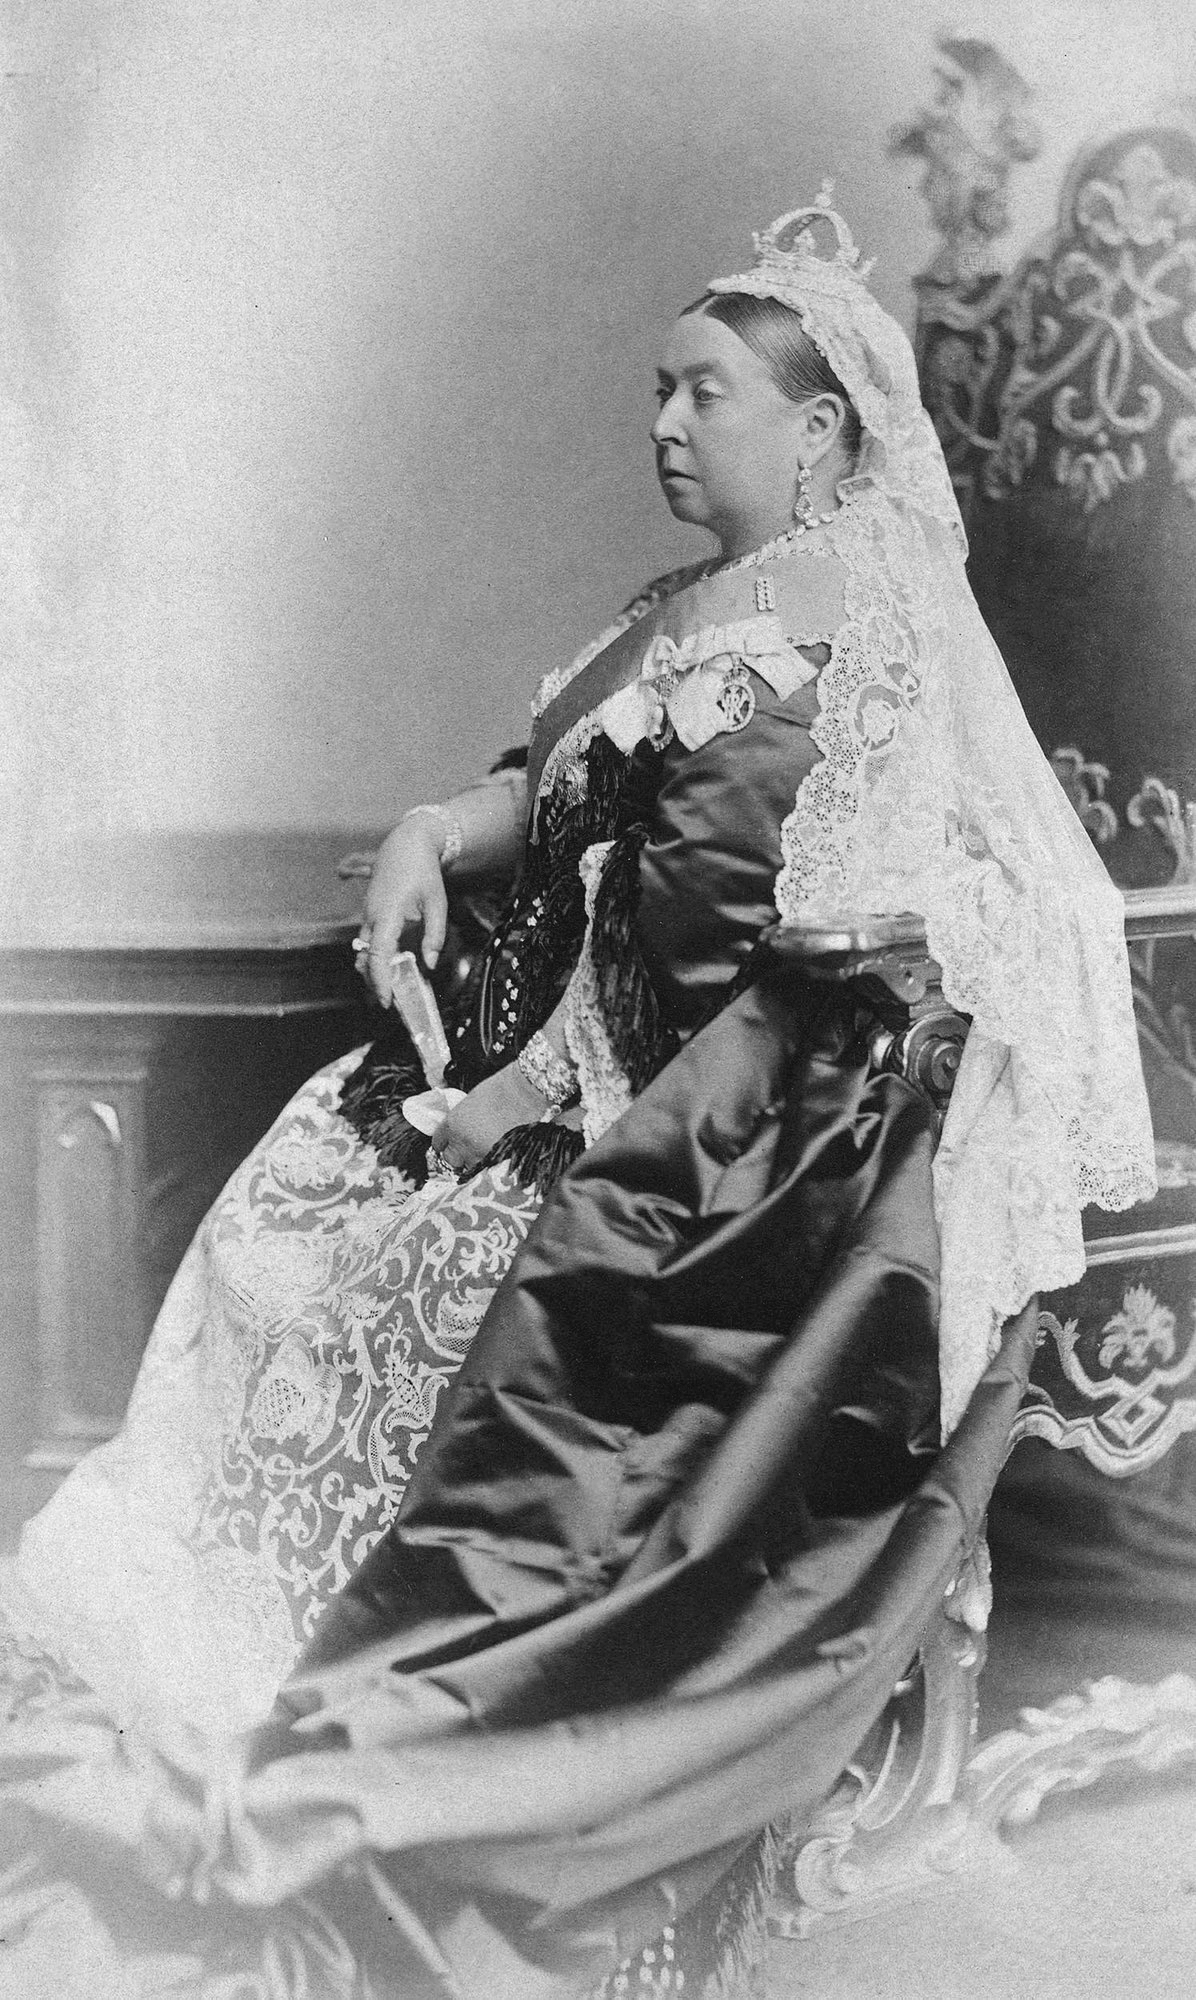 https://upload.wikimedia.org/wikipedia/commons/9/9c/Queen_Victoria_1887.jpg